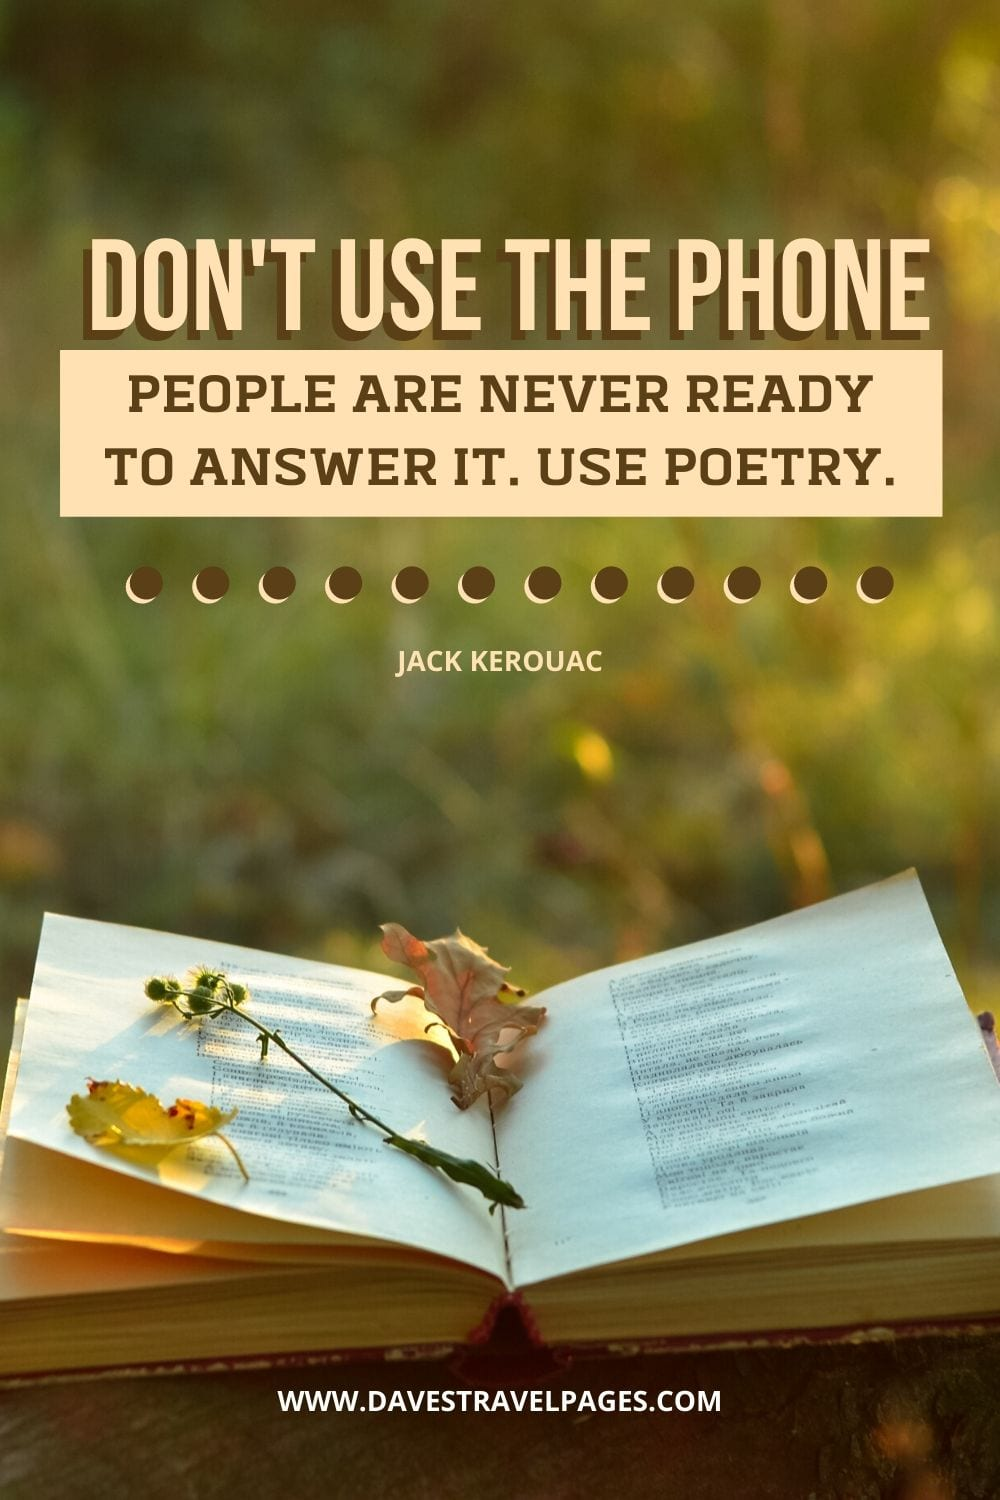 """Don't use the phone. People are never ready to answer it. Use poetry."" - Jack Kerouac Poetry Quote"